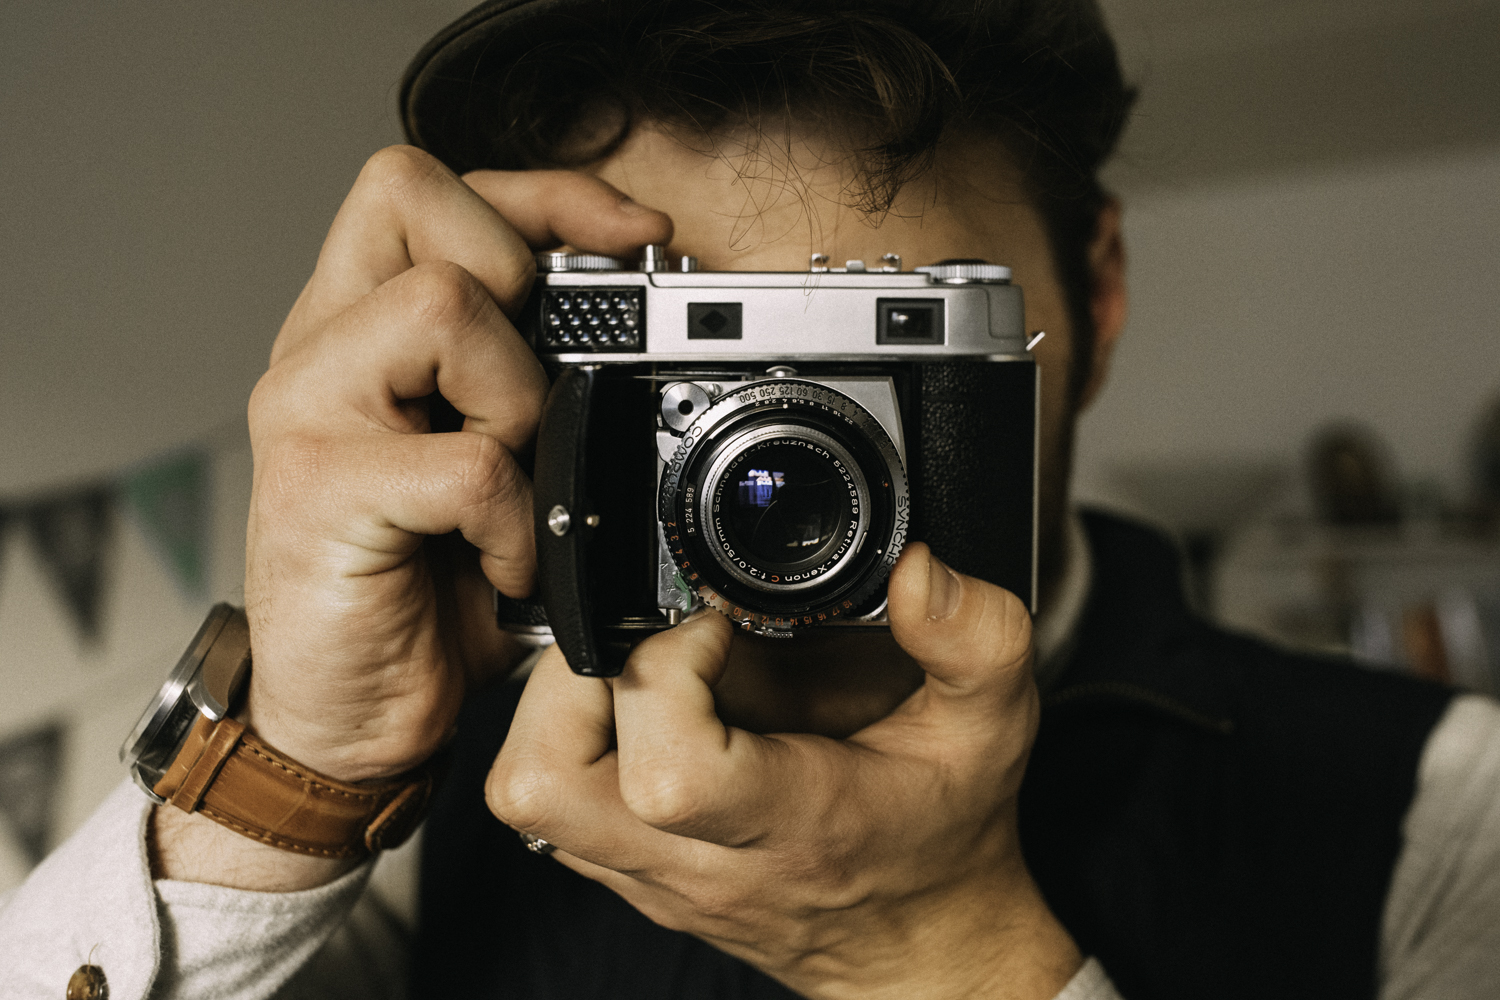 Remember to hold the camera carefully. Covering the light meter or the lens by accident could cause problems. It can be a little awkward at first, but then you'll get used to it.